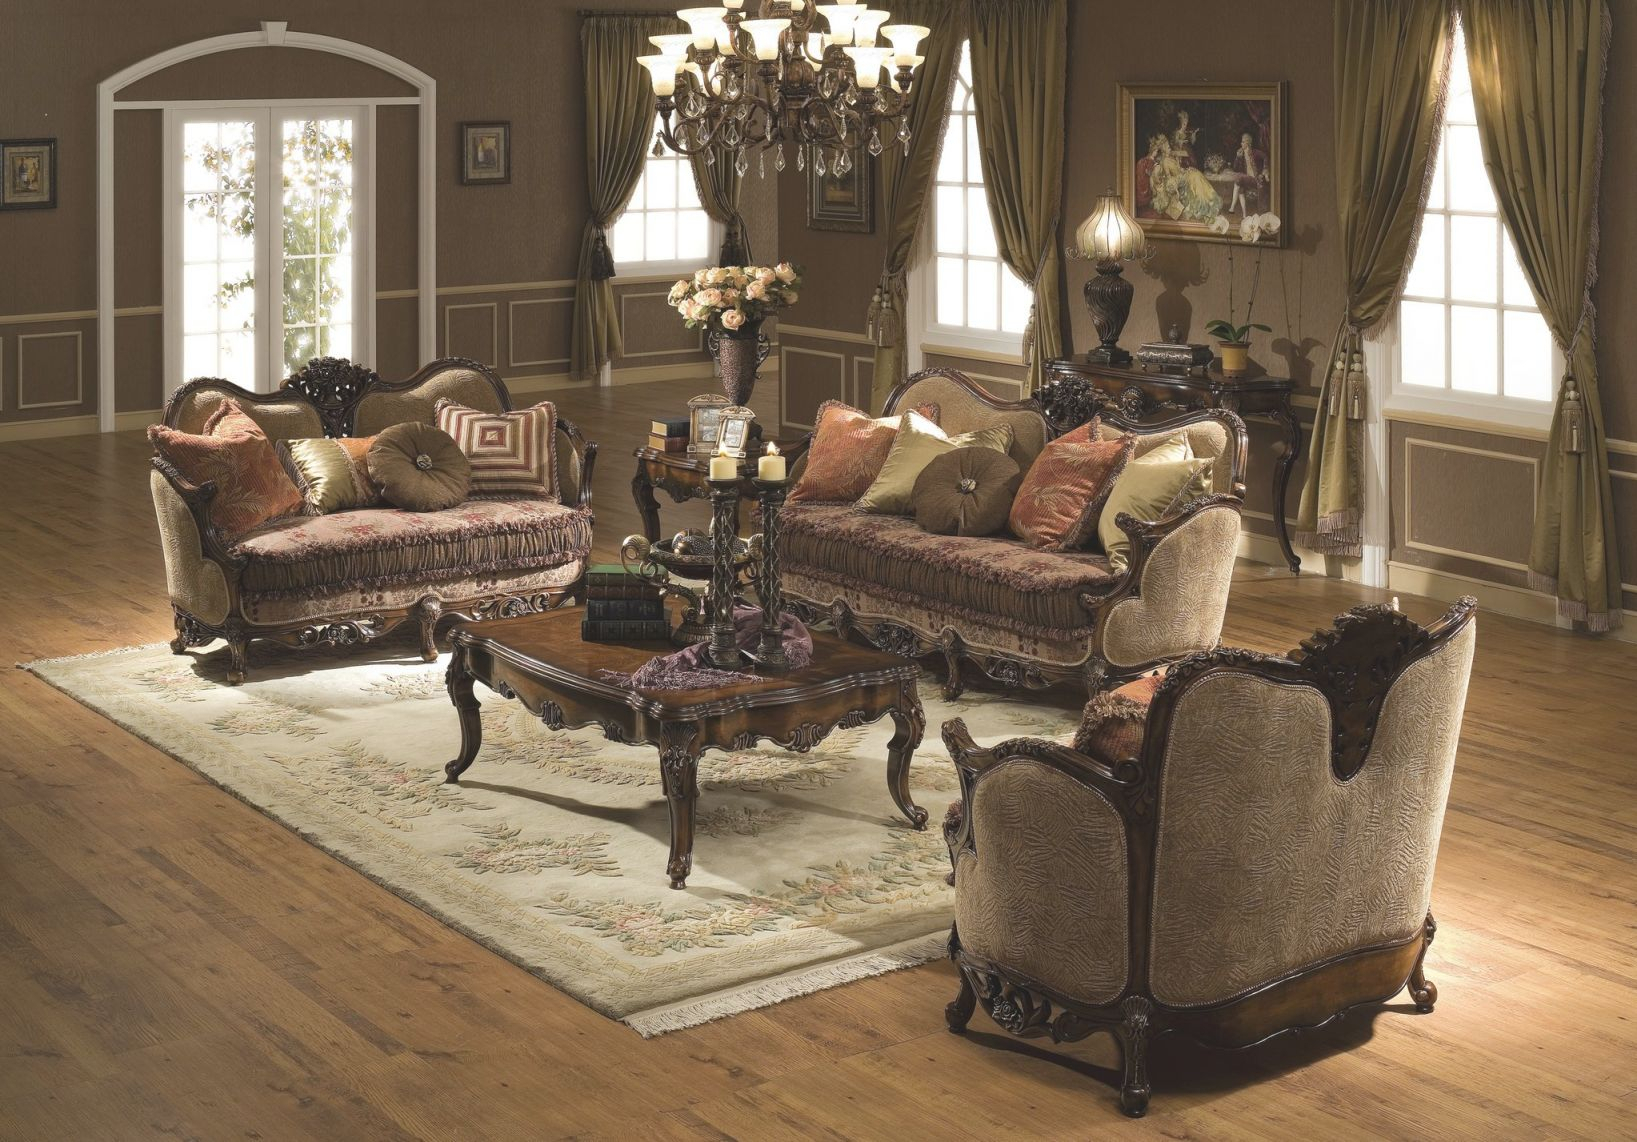 Living Room Furniture | Living Room Sets | Sofas | Couches regarding Traditional Living Room Furniture